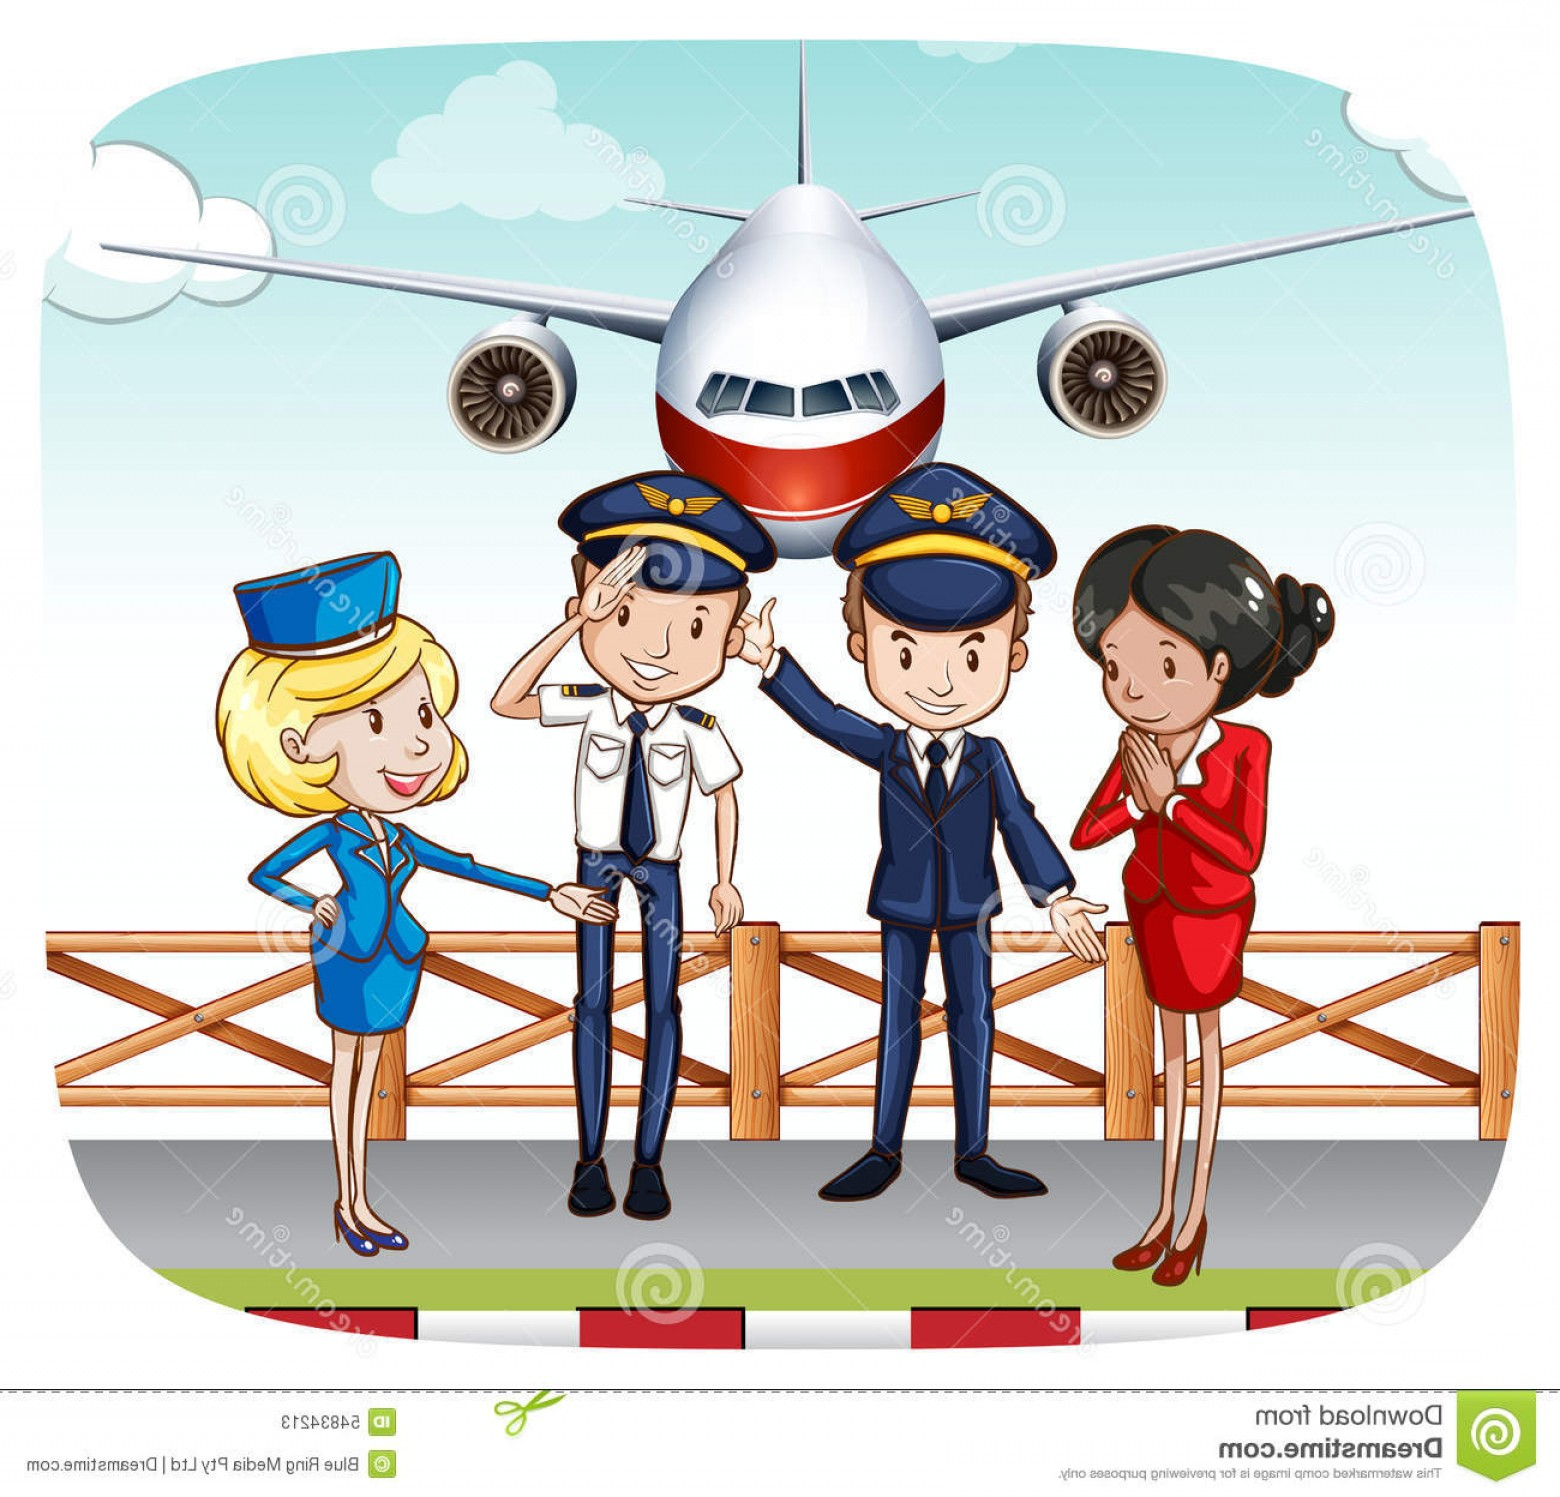 Vector Man Working In Cabin: Stock Illustration Cabin Crew Pilots Flight Attendants Greeting Airport Image